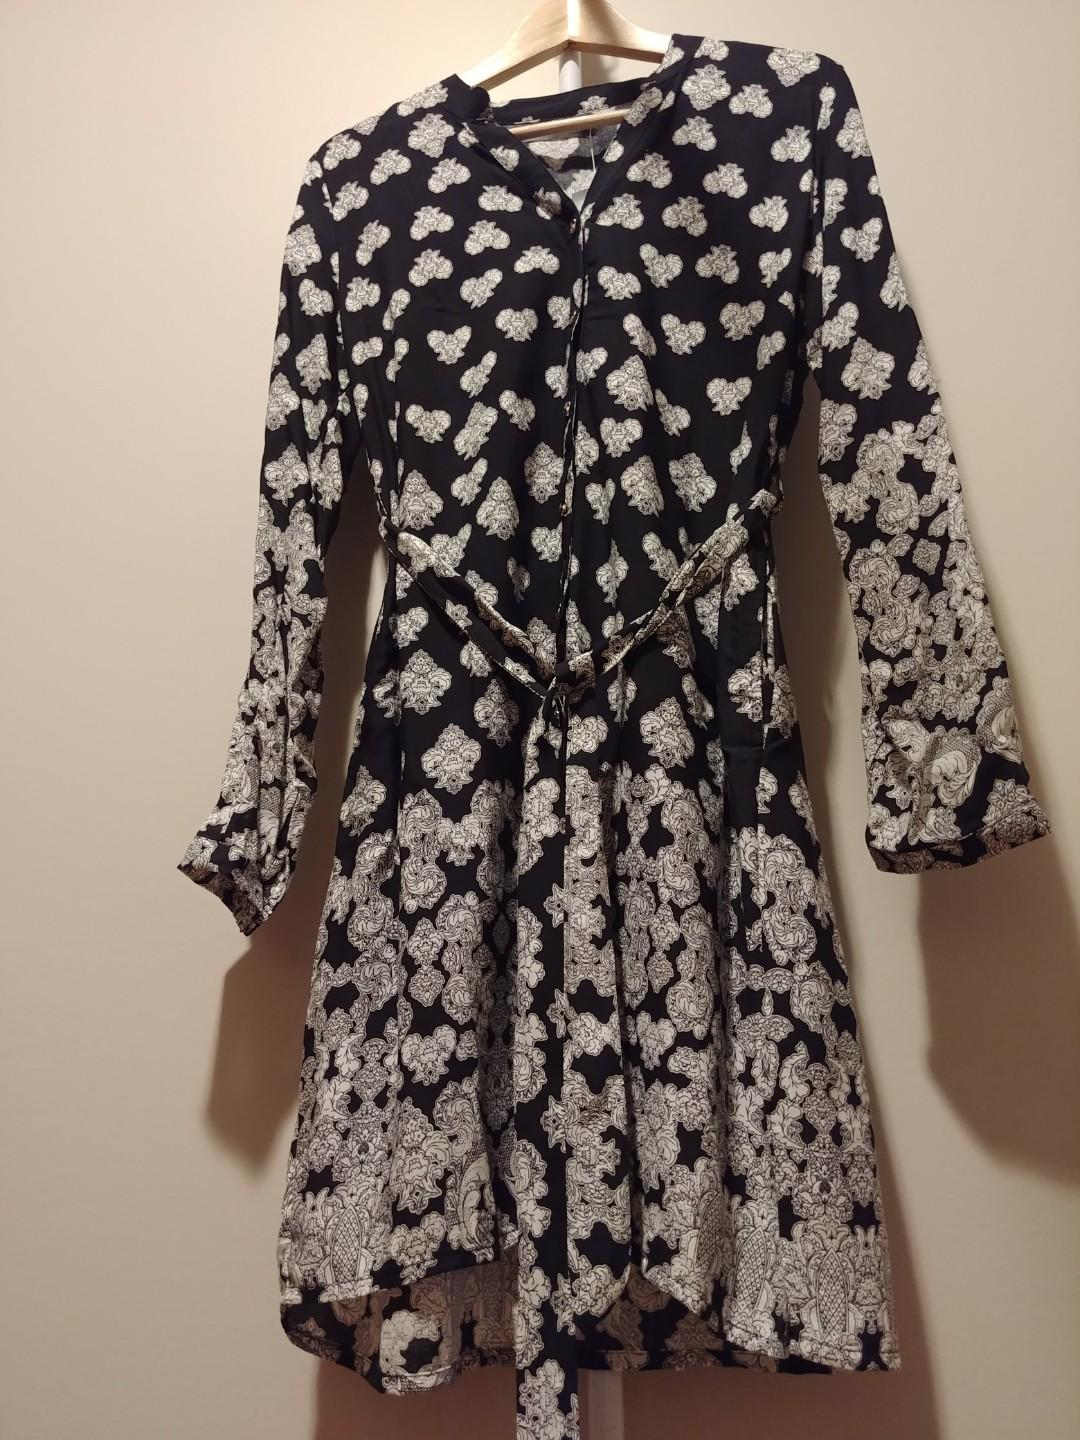 Suzy Shier Black & White Patterned Button-up Dress (Size small)